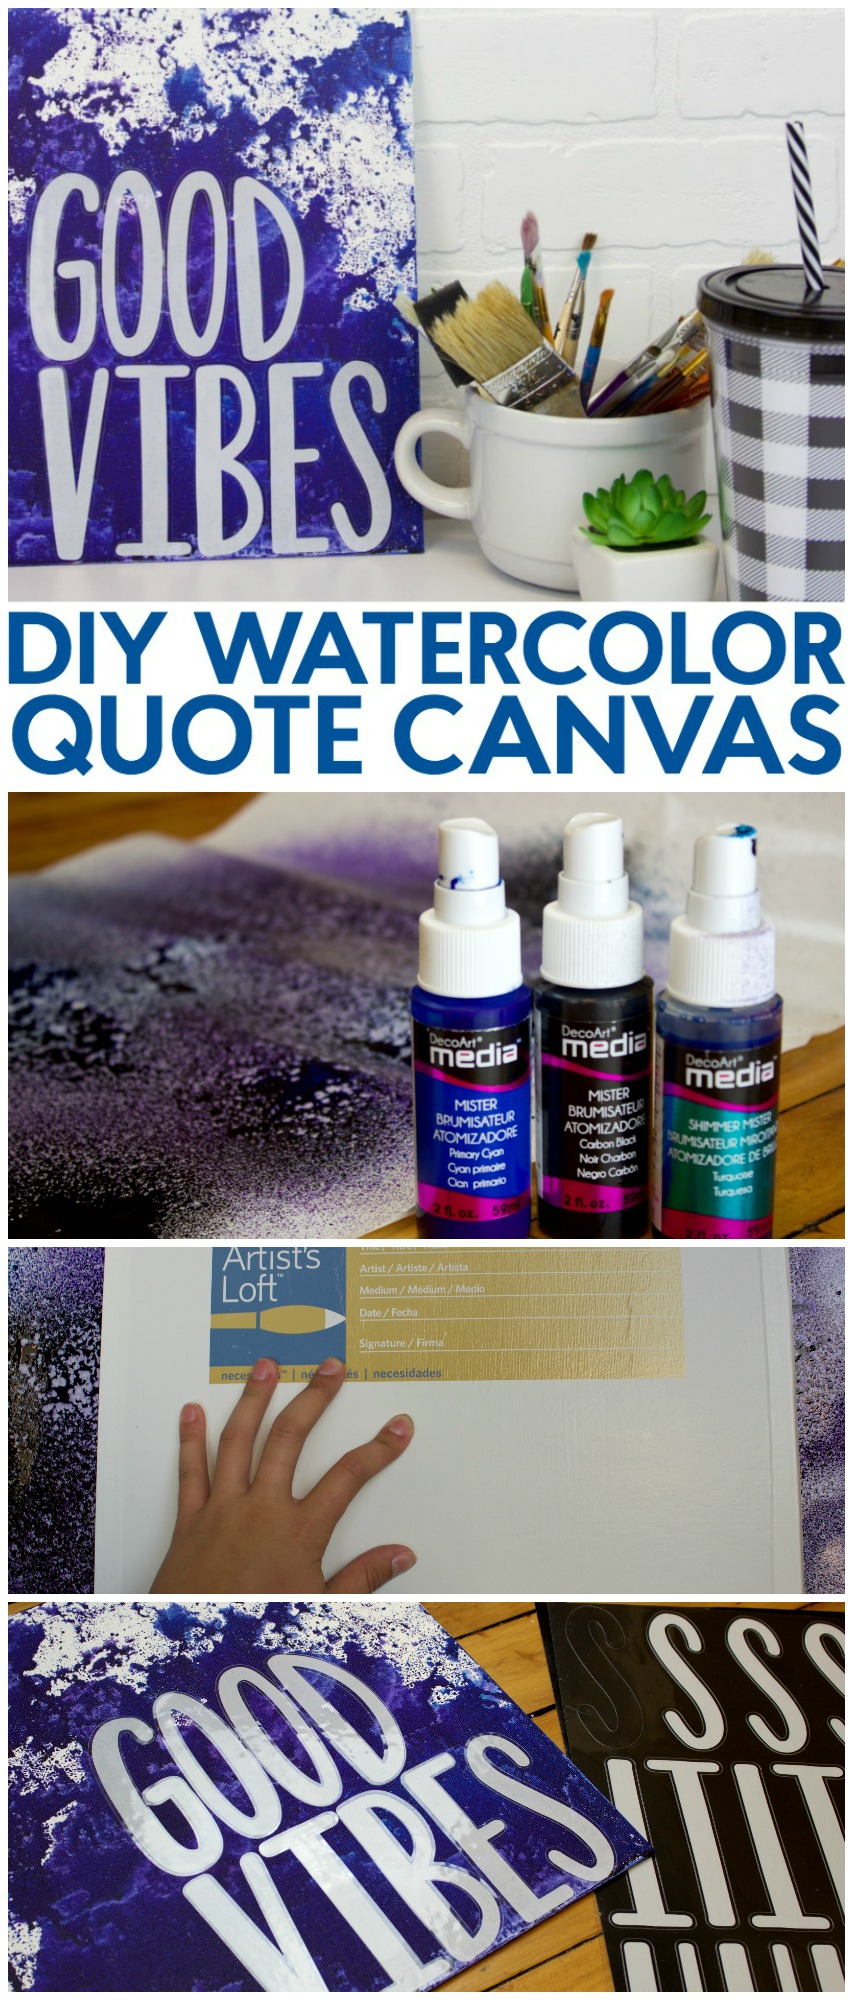 Diy watercolor quote canvas a little craft in your daya for Diy room decor quotes